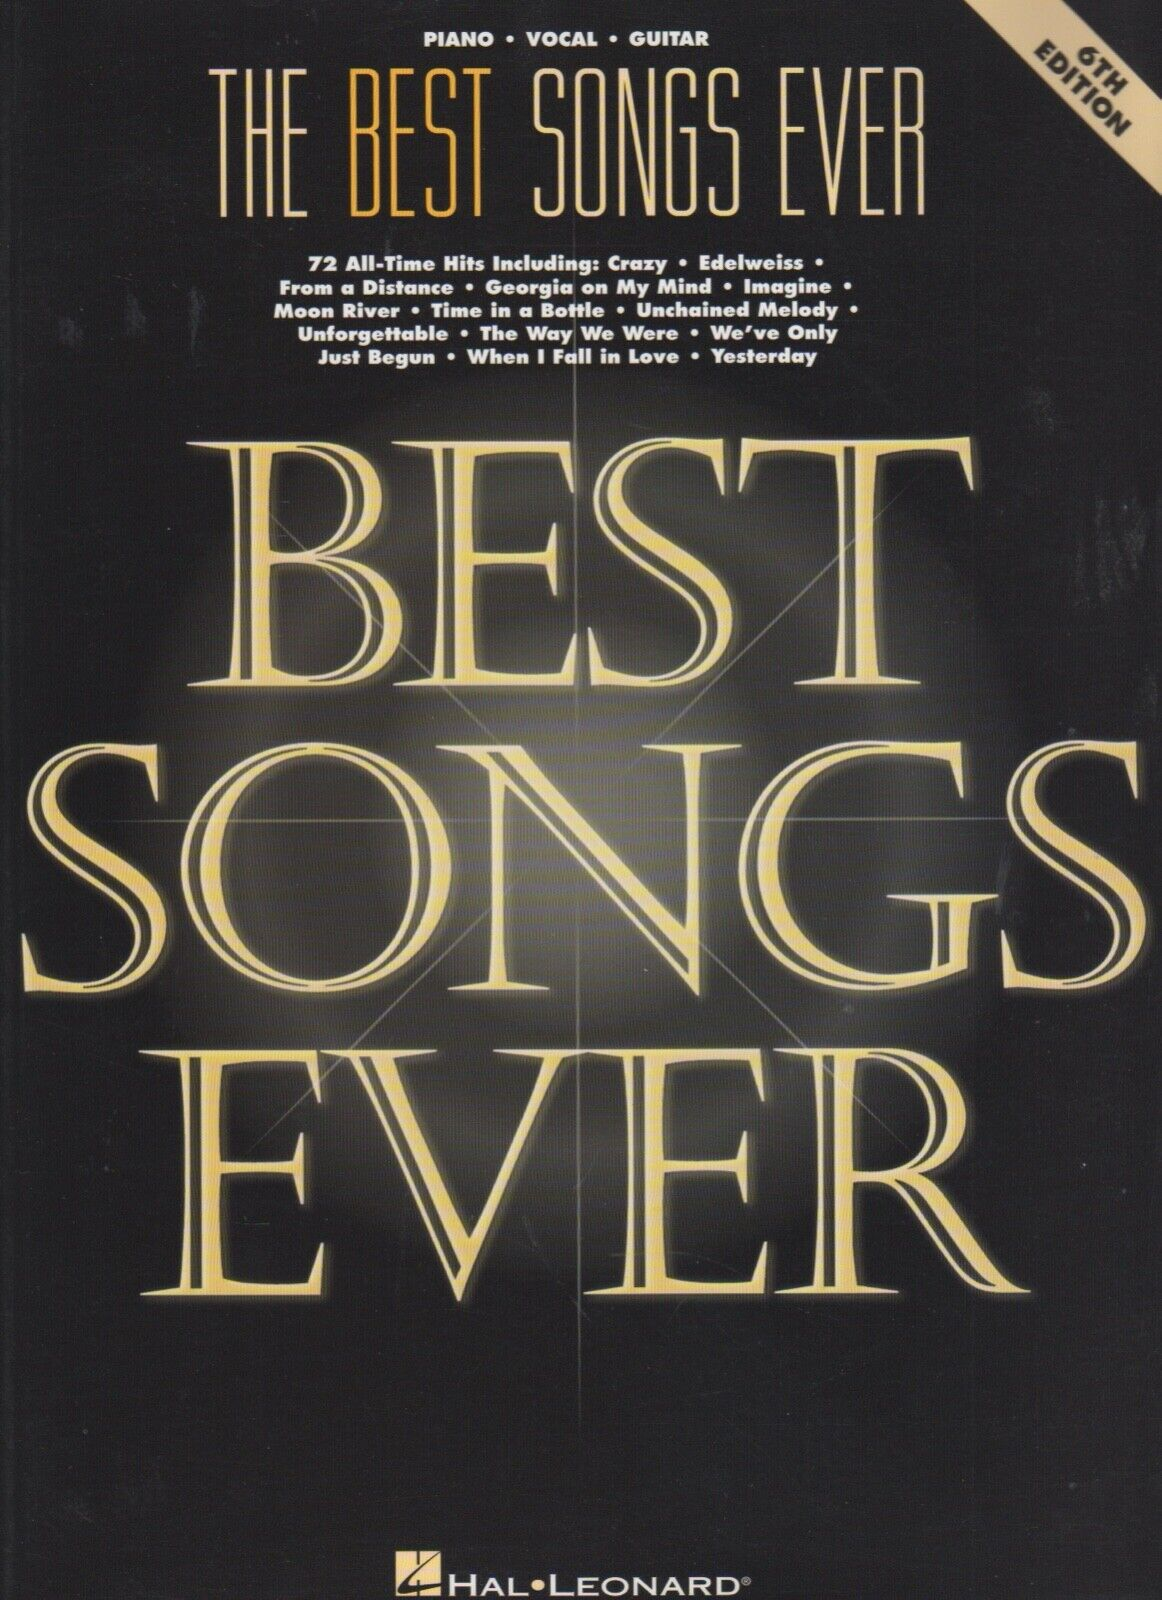 BEST SONGS EVER, 6th Edition 72 All-Time Hits PIANO, VOCAL, GUITAR FREE SHIP  - $14.50